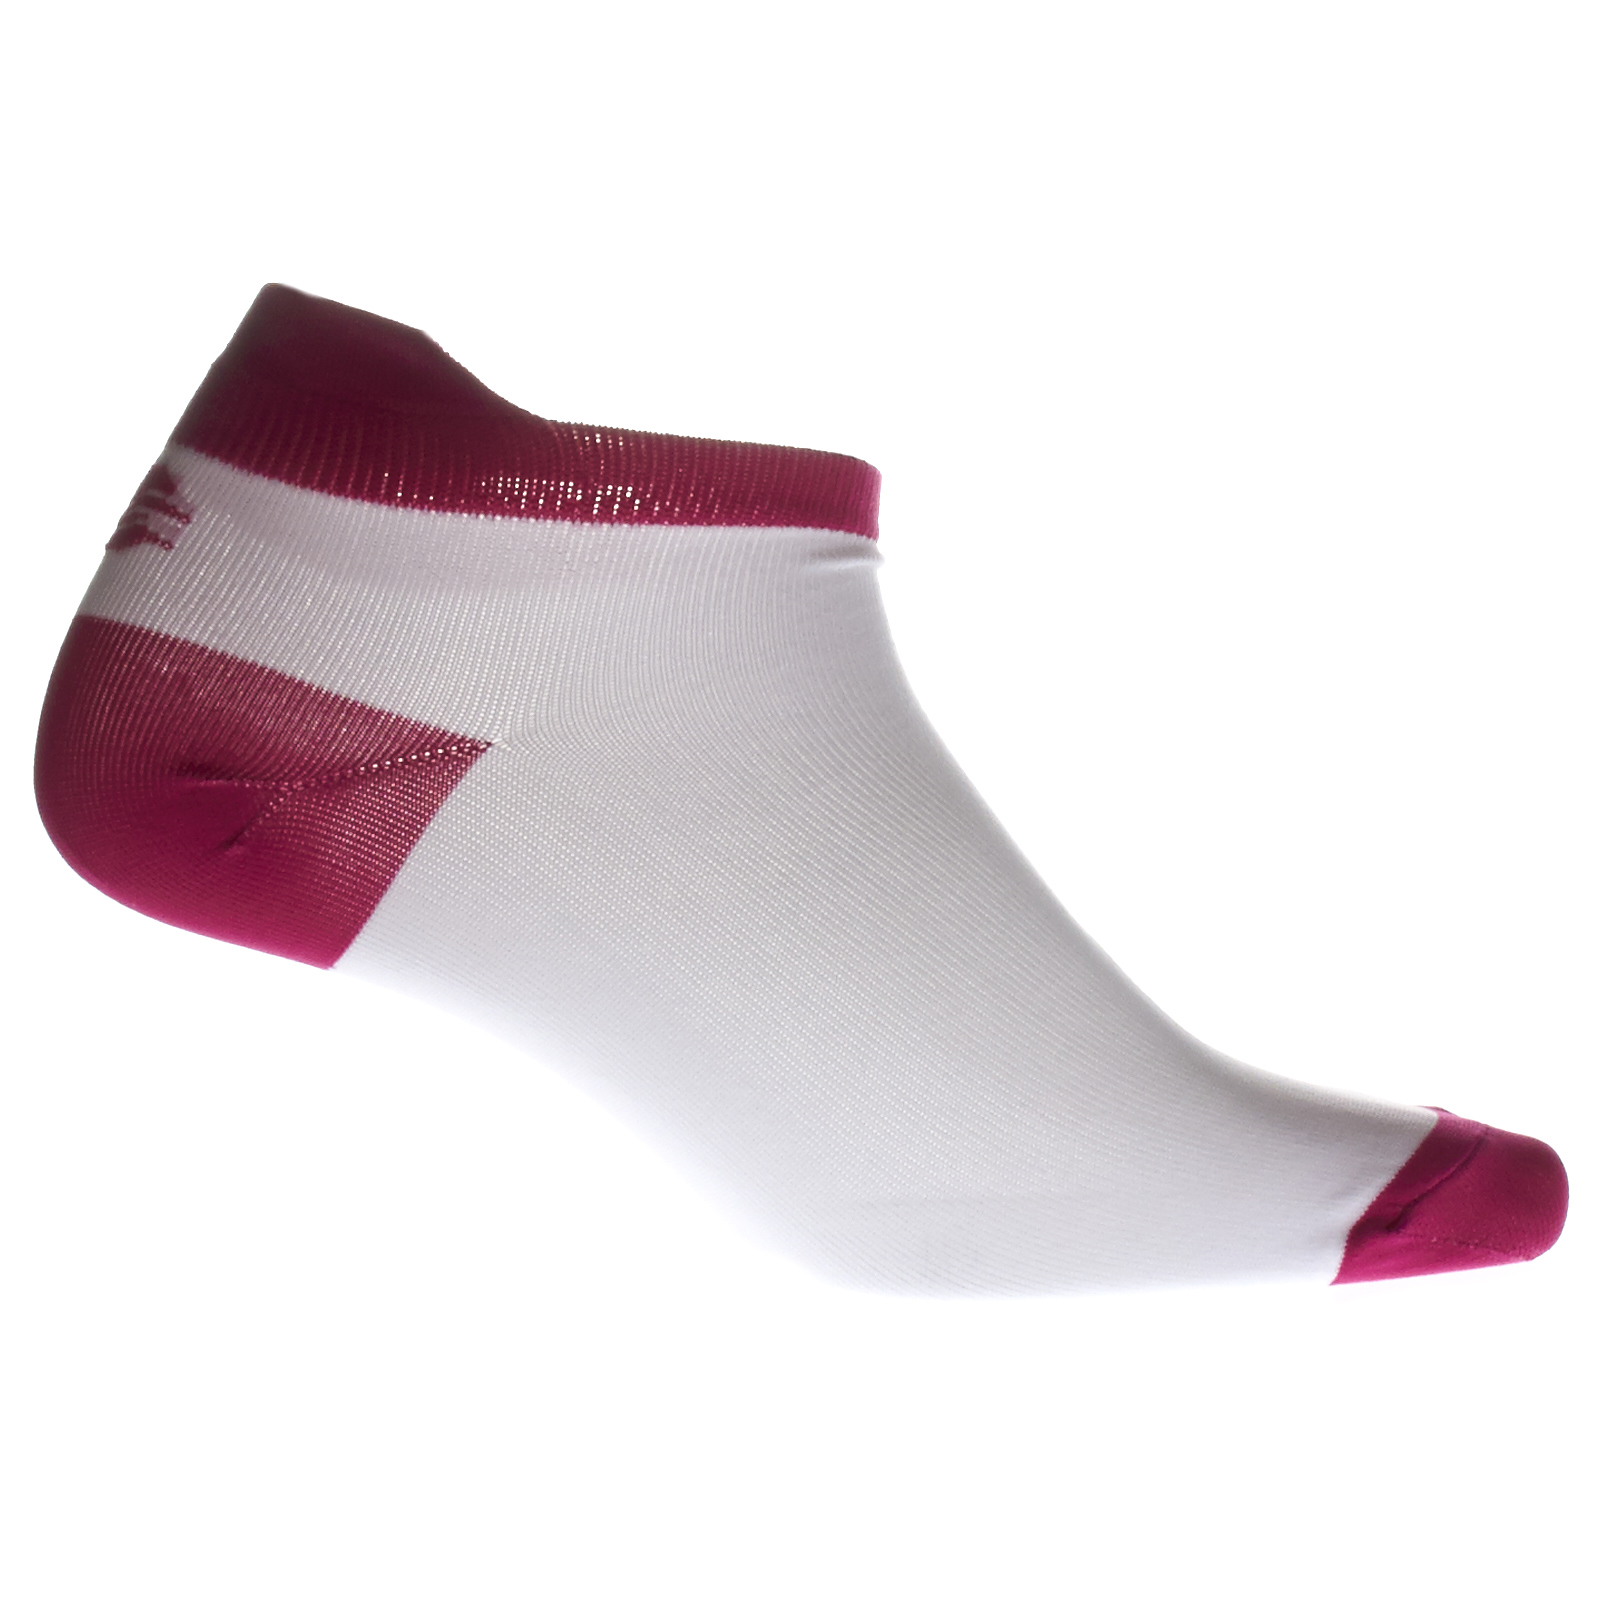 Arch support socks for running